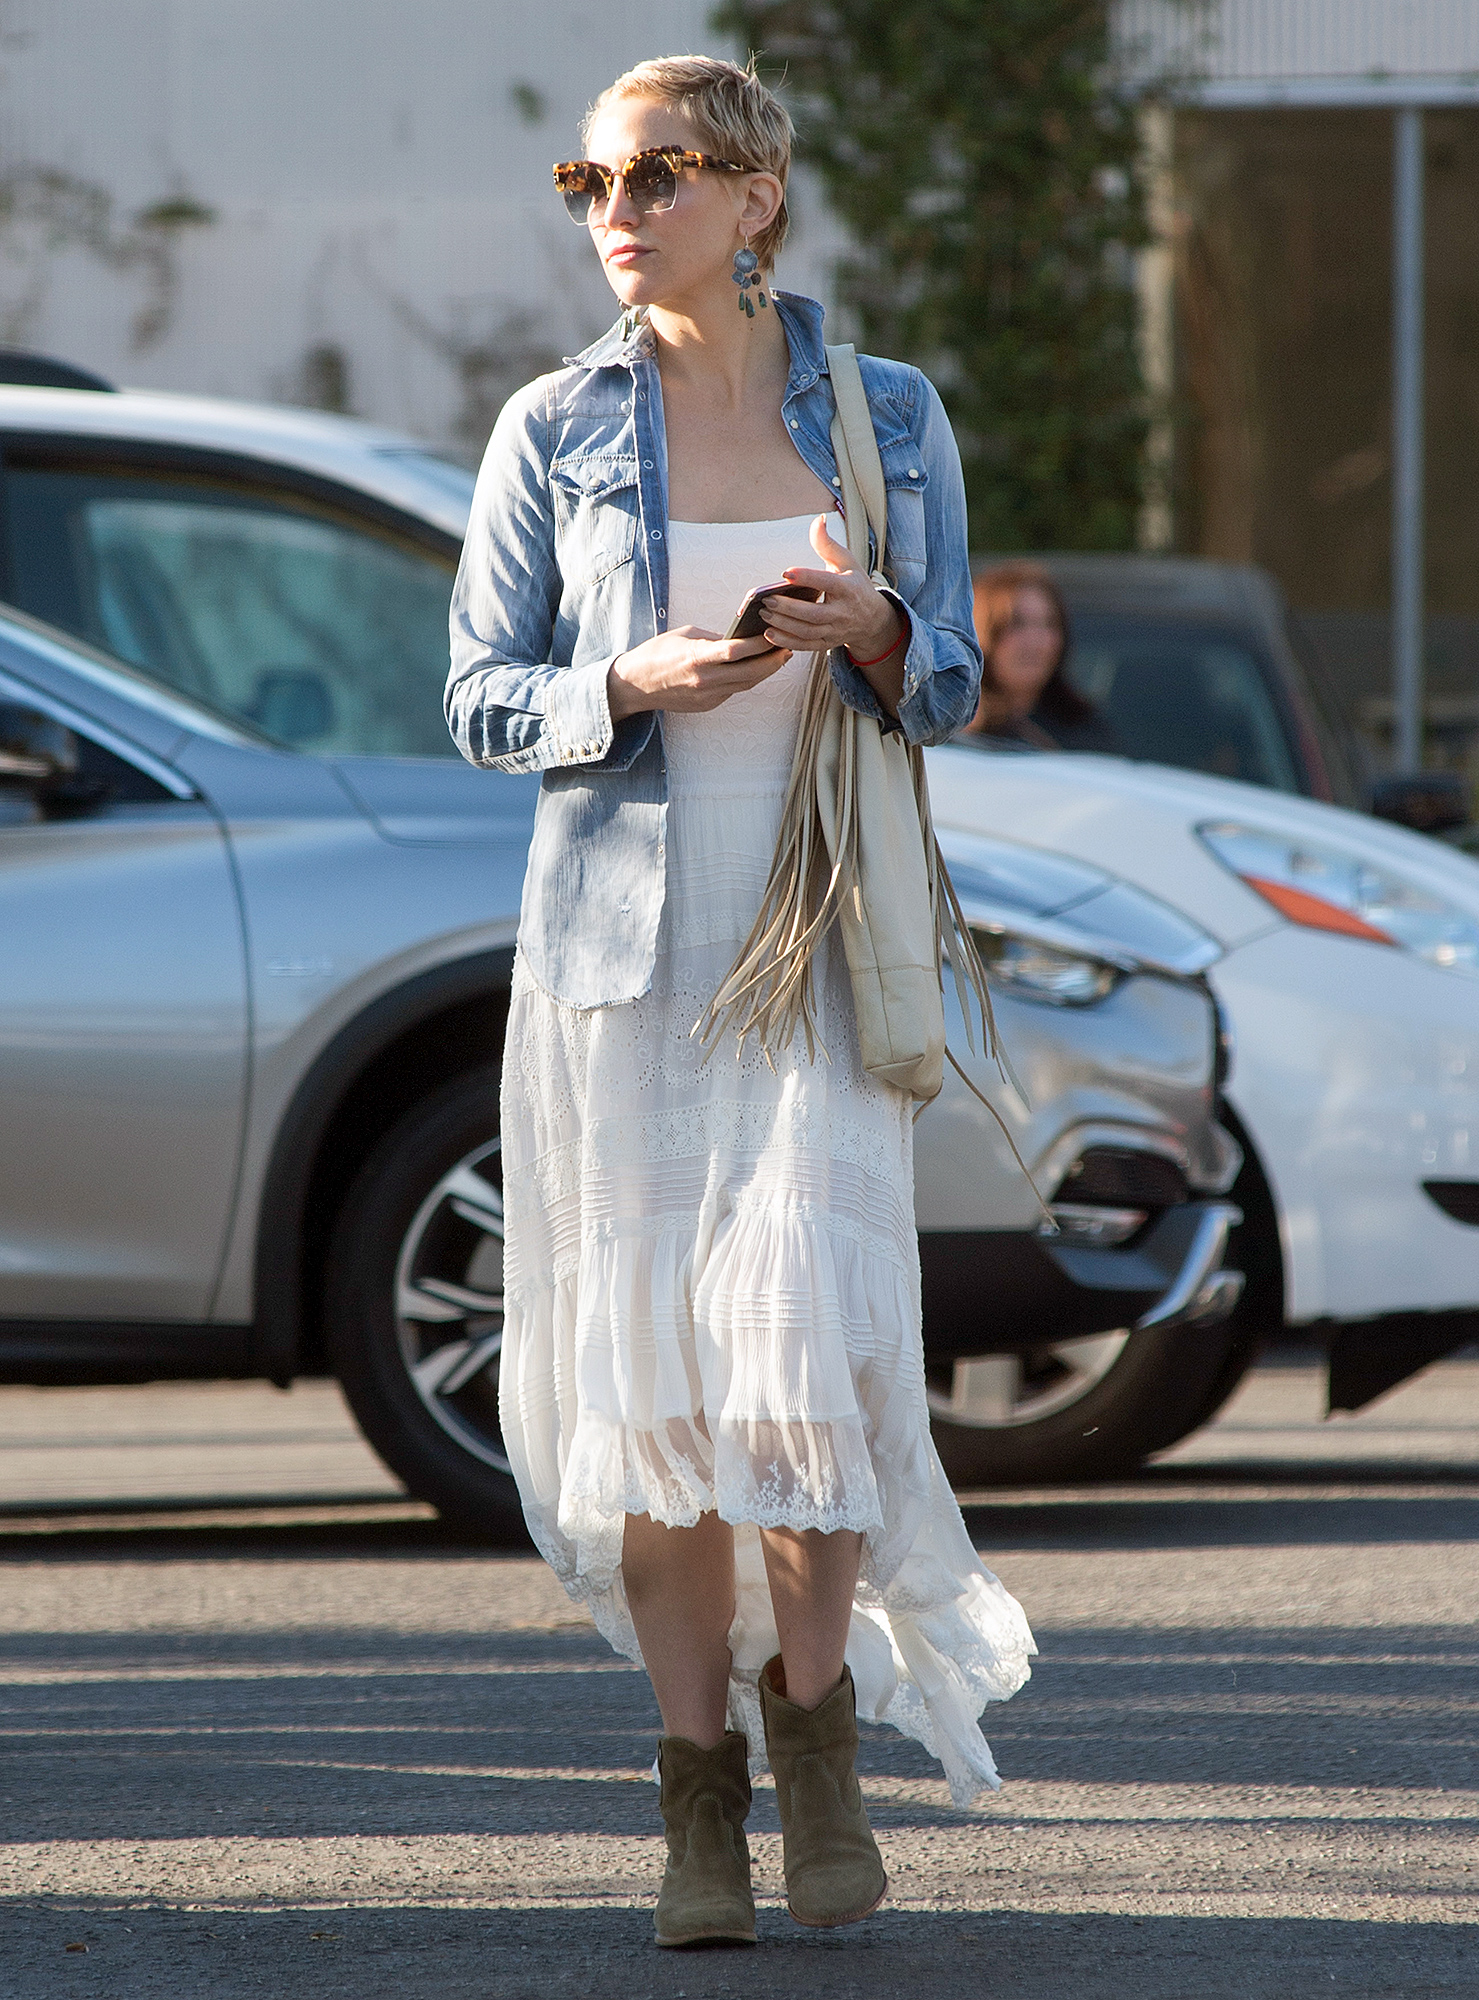 EXCLUSIVE: Kate Hudson is Pictured Going to a Theatre Workshop at the Electric Lodge in Venice, California.